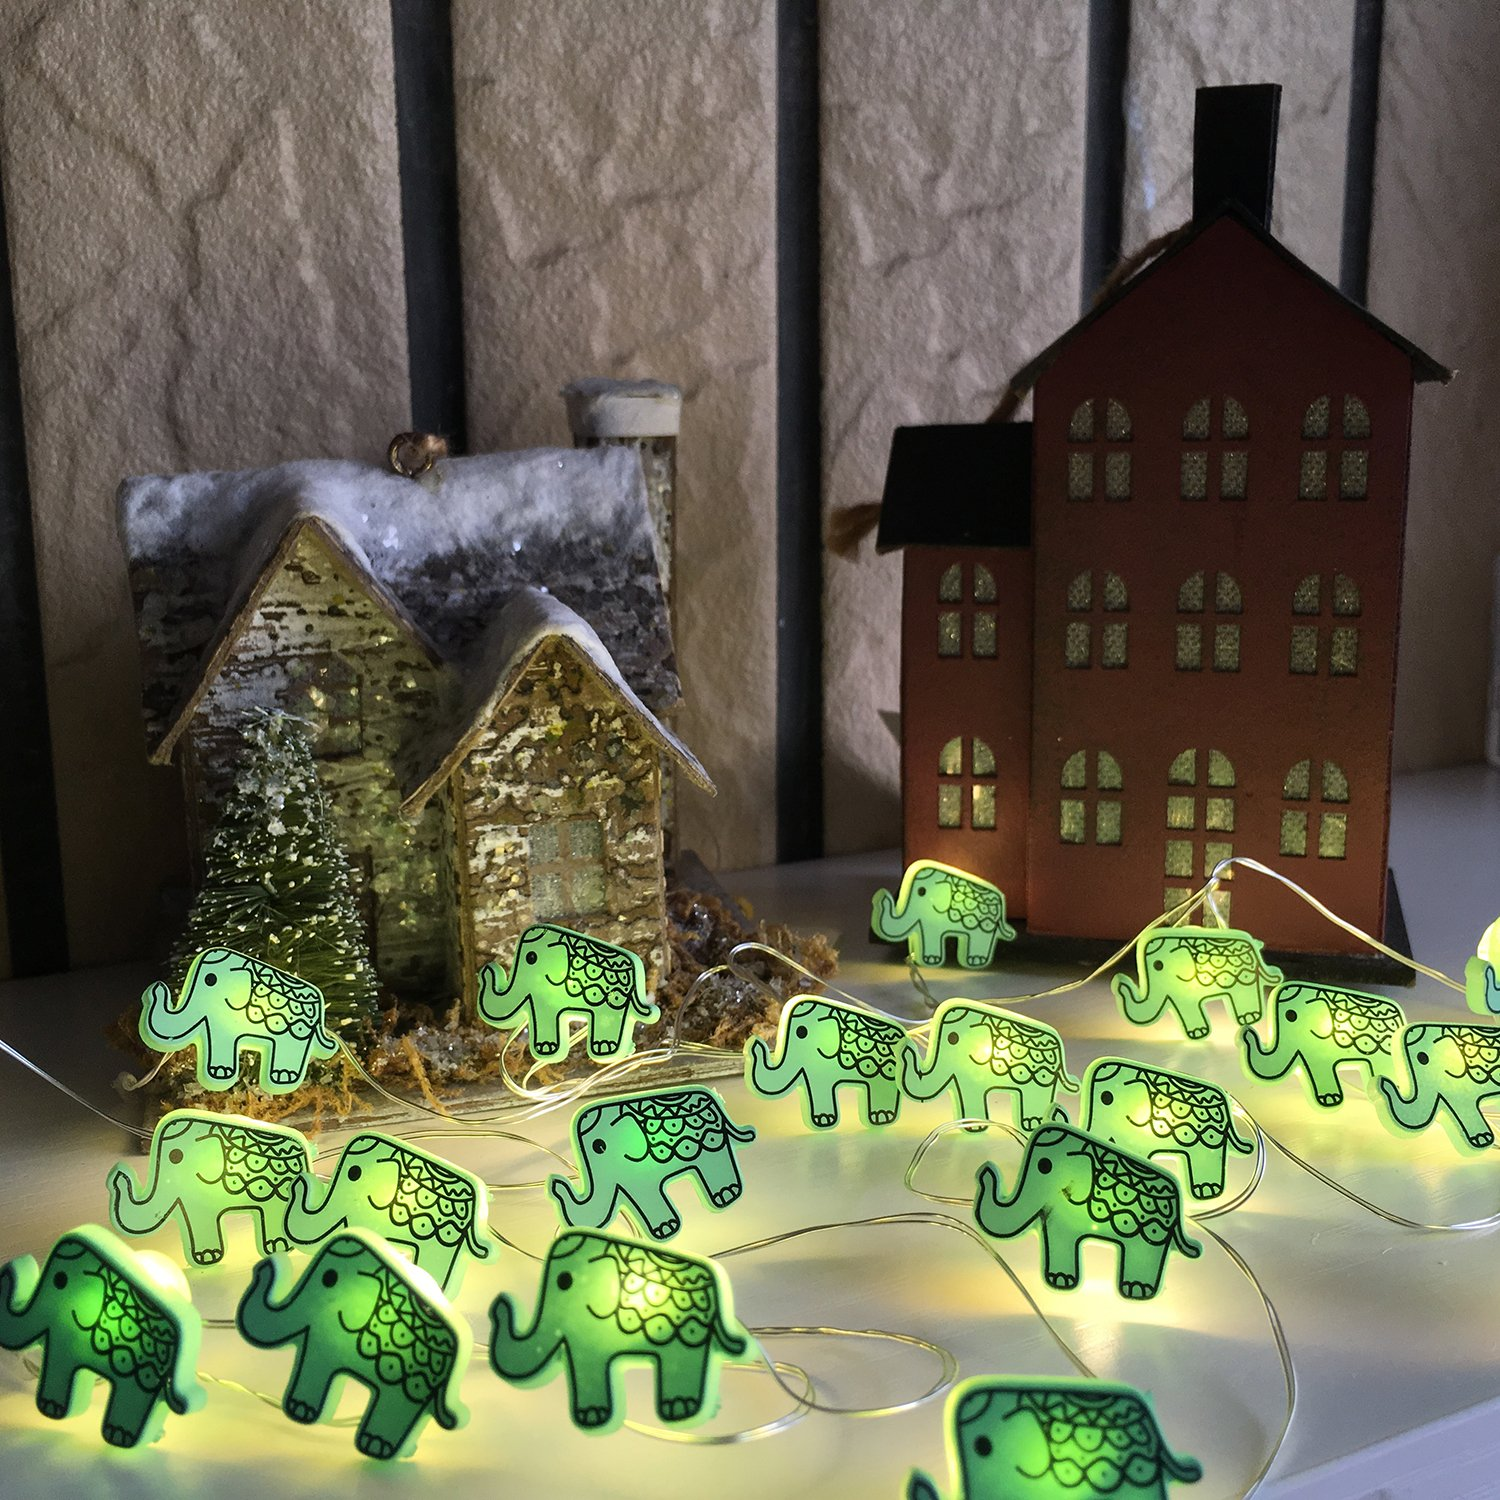 Animal Novelty Lights String Battery Operated with Timer Control 20 Micro LED Wire Lights Waterproof 2 Pack Elephant String Lights for Home Decoration,Kids Bedroom,Christmas,Holiday,(ELE2) by VagaryLight (Image #4)